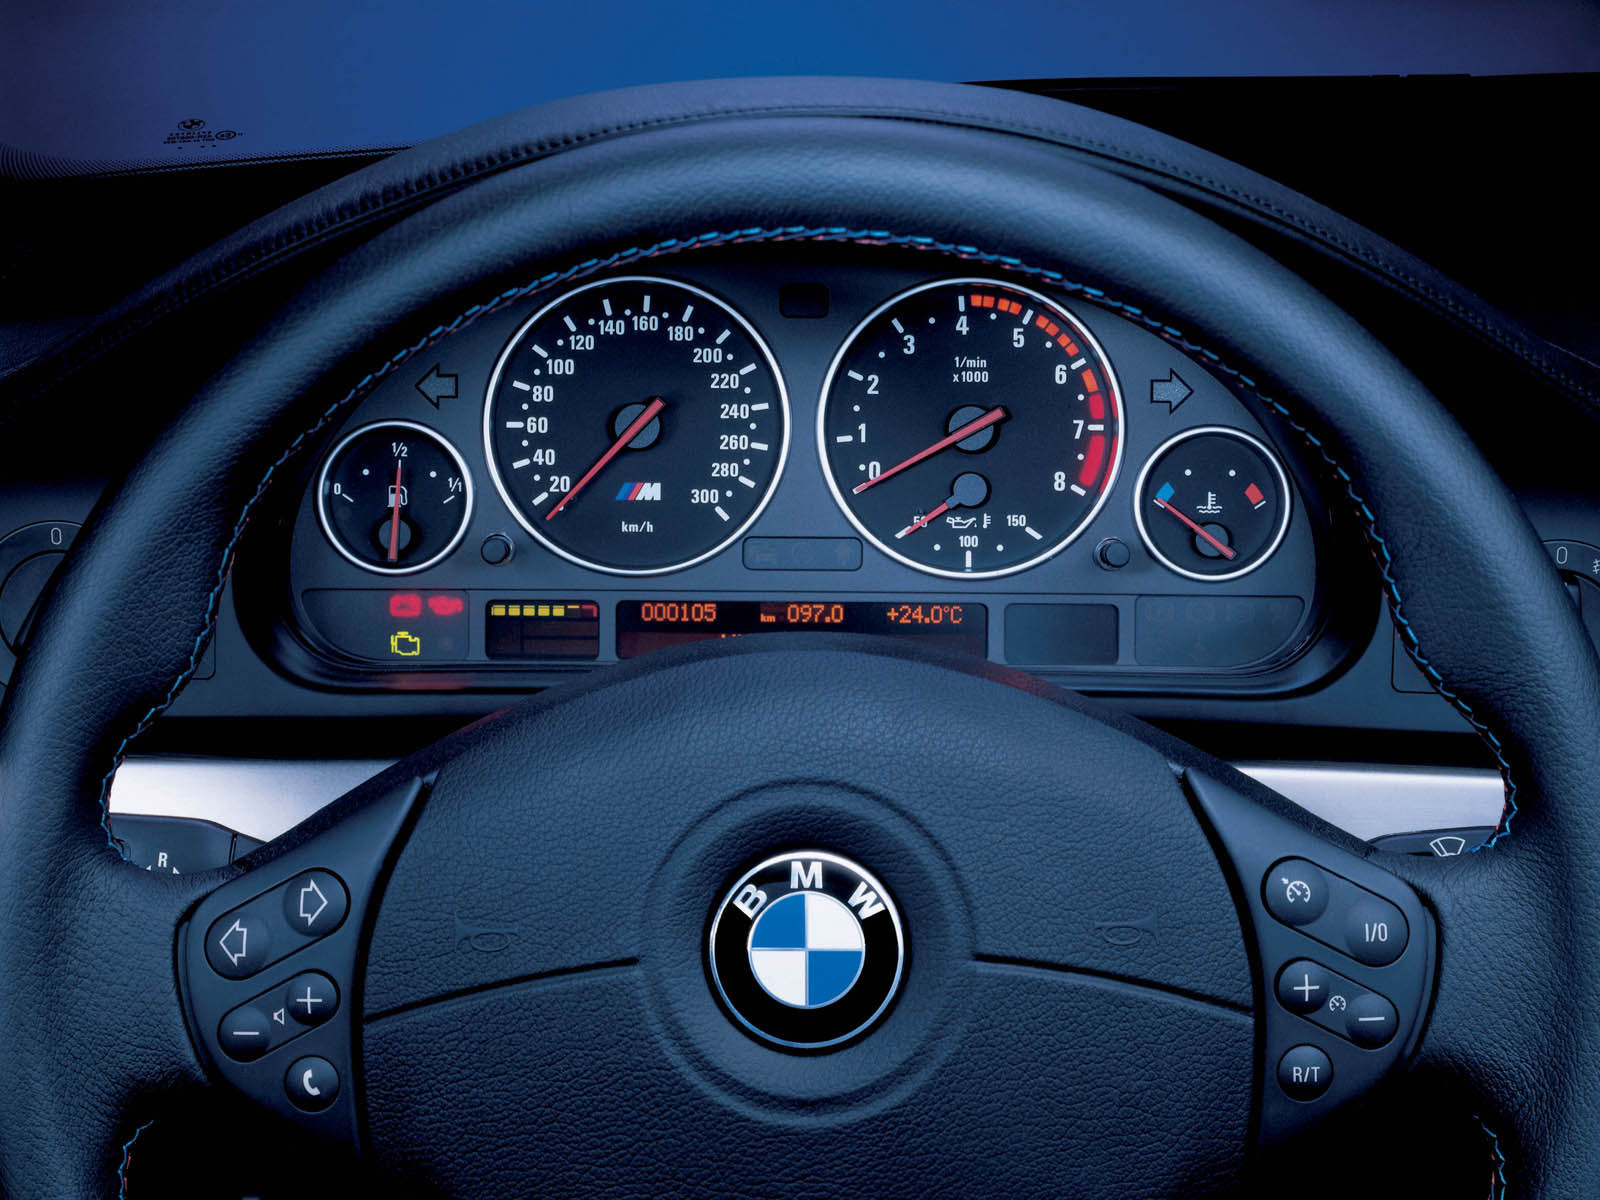 bmw bmw 1547074 1600 1200 Wallpaper bmw tuning